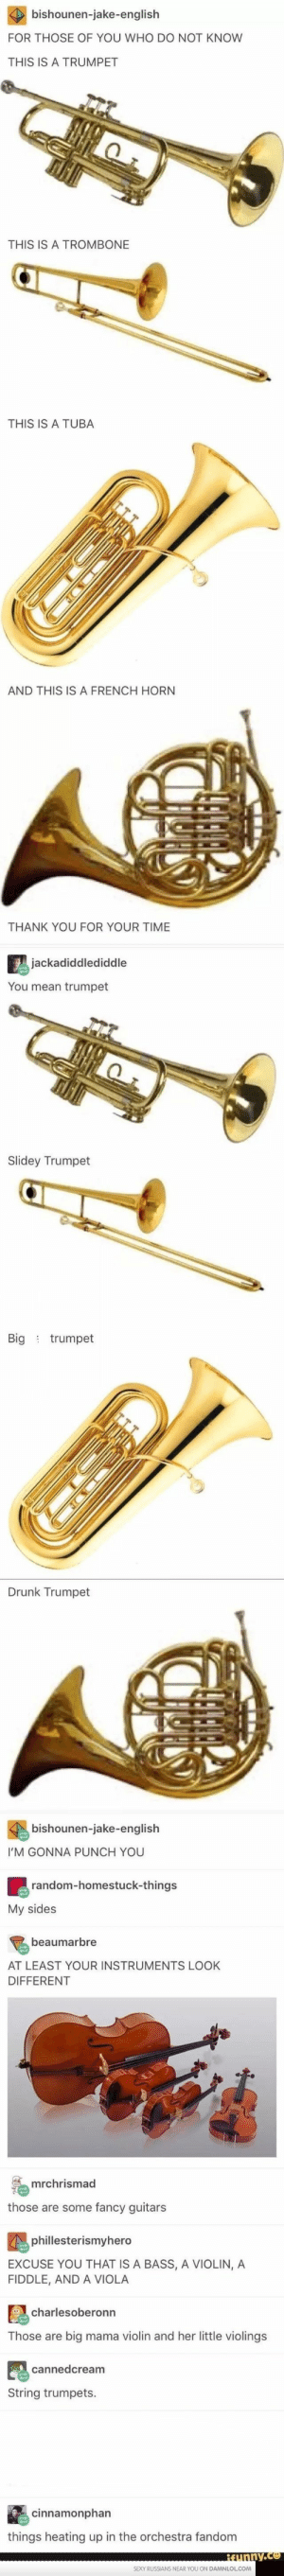 Drunk, Thank You, and Fancy: FOR THOSE OF YOU WHO DO NOT KNOW  THIS IS A TRUMPET  THIS IS A TROMBONE  THIS IS A TUBA  AND THIS IS A FRENCH HORN  THANK YOU FOR YOUR TIME  You mean trumpet  Slidey Trumpet  Big trumpet  Drunk Trumpet  I'M GONNA PUNCH YOU  My sides  AT LEAST YOUR INSTRUMENTS LOOK  DIFFERENT  those are some fancy guitars  EXCUSE YOU THAT IS A BASS, A VIOLIN, A  FIDDLE, AND A VIOLA  Those are big mama violin and her little violings  String trumpets.  things heating up in the orchestra fandom Lowkey Dead inside because of this #violinfunny #violinhumor